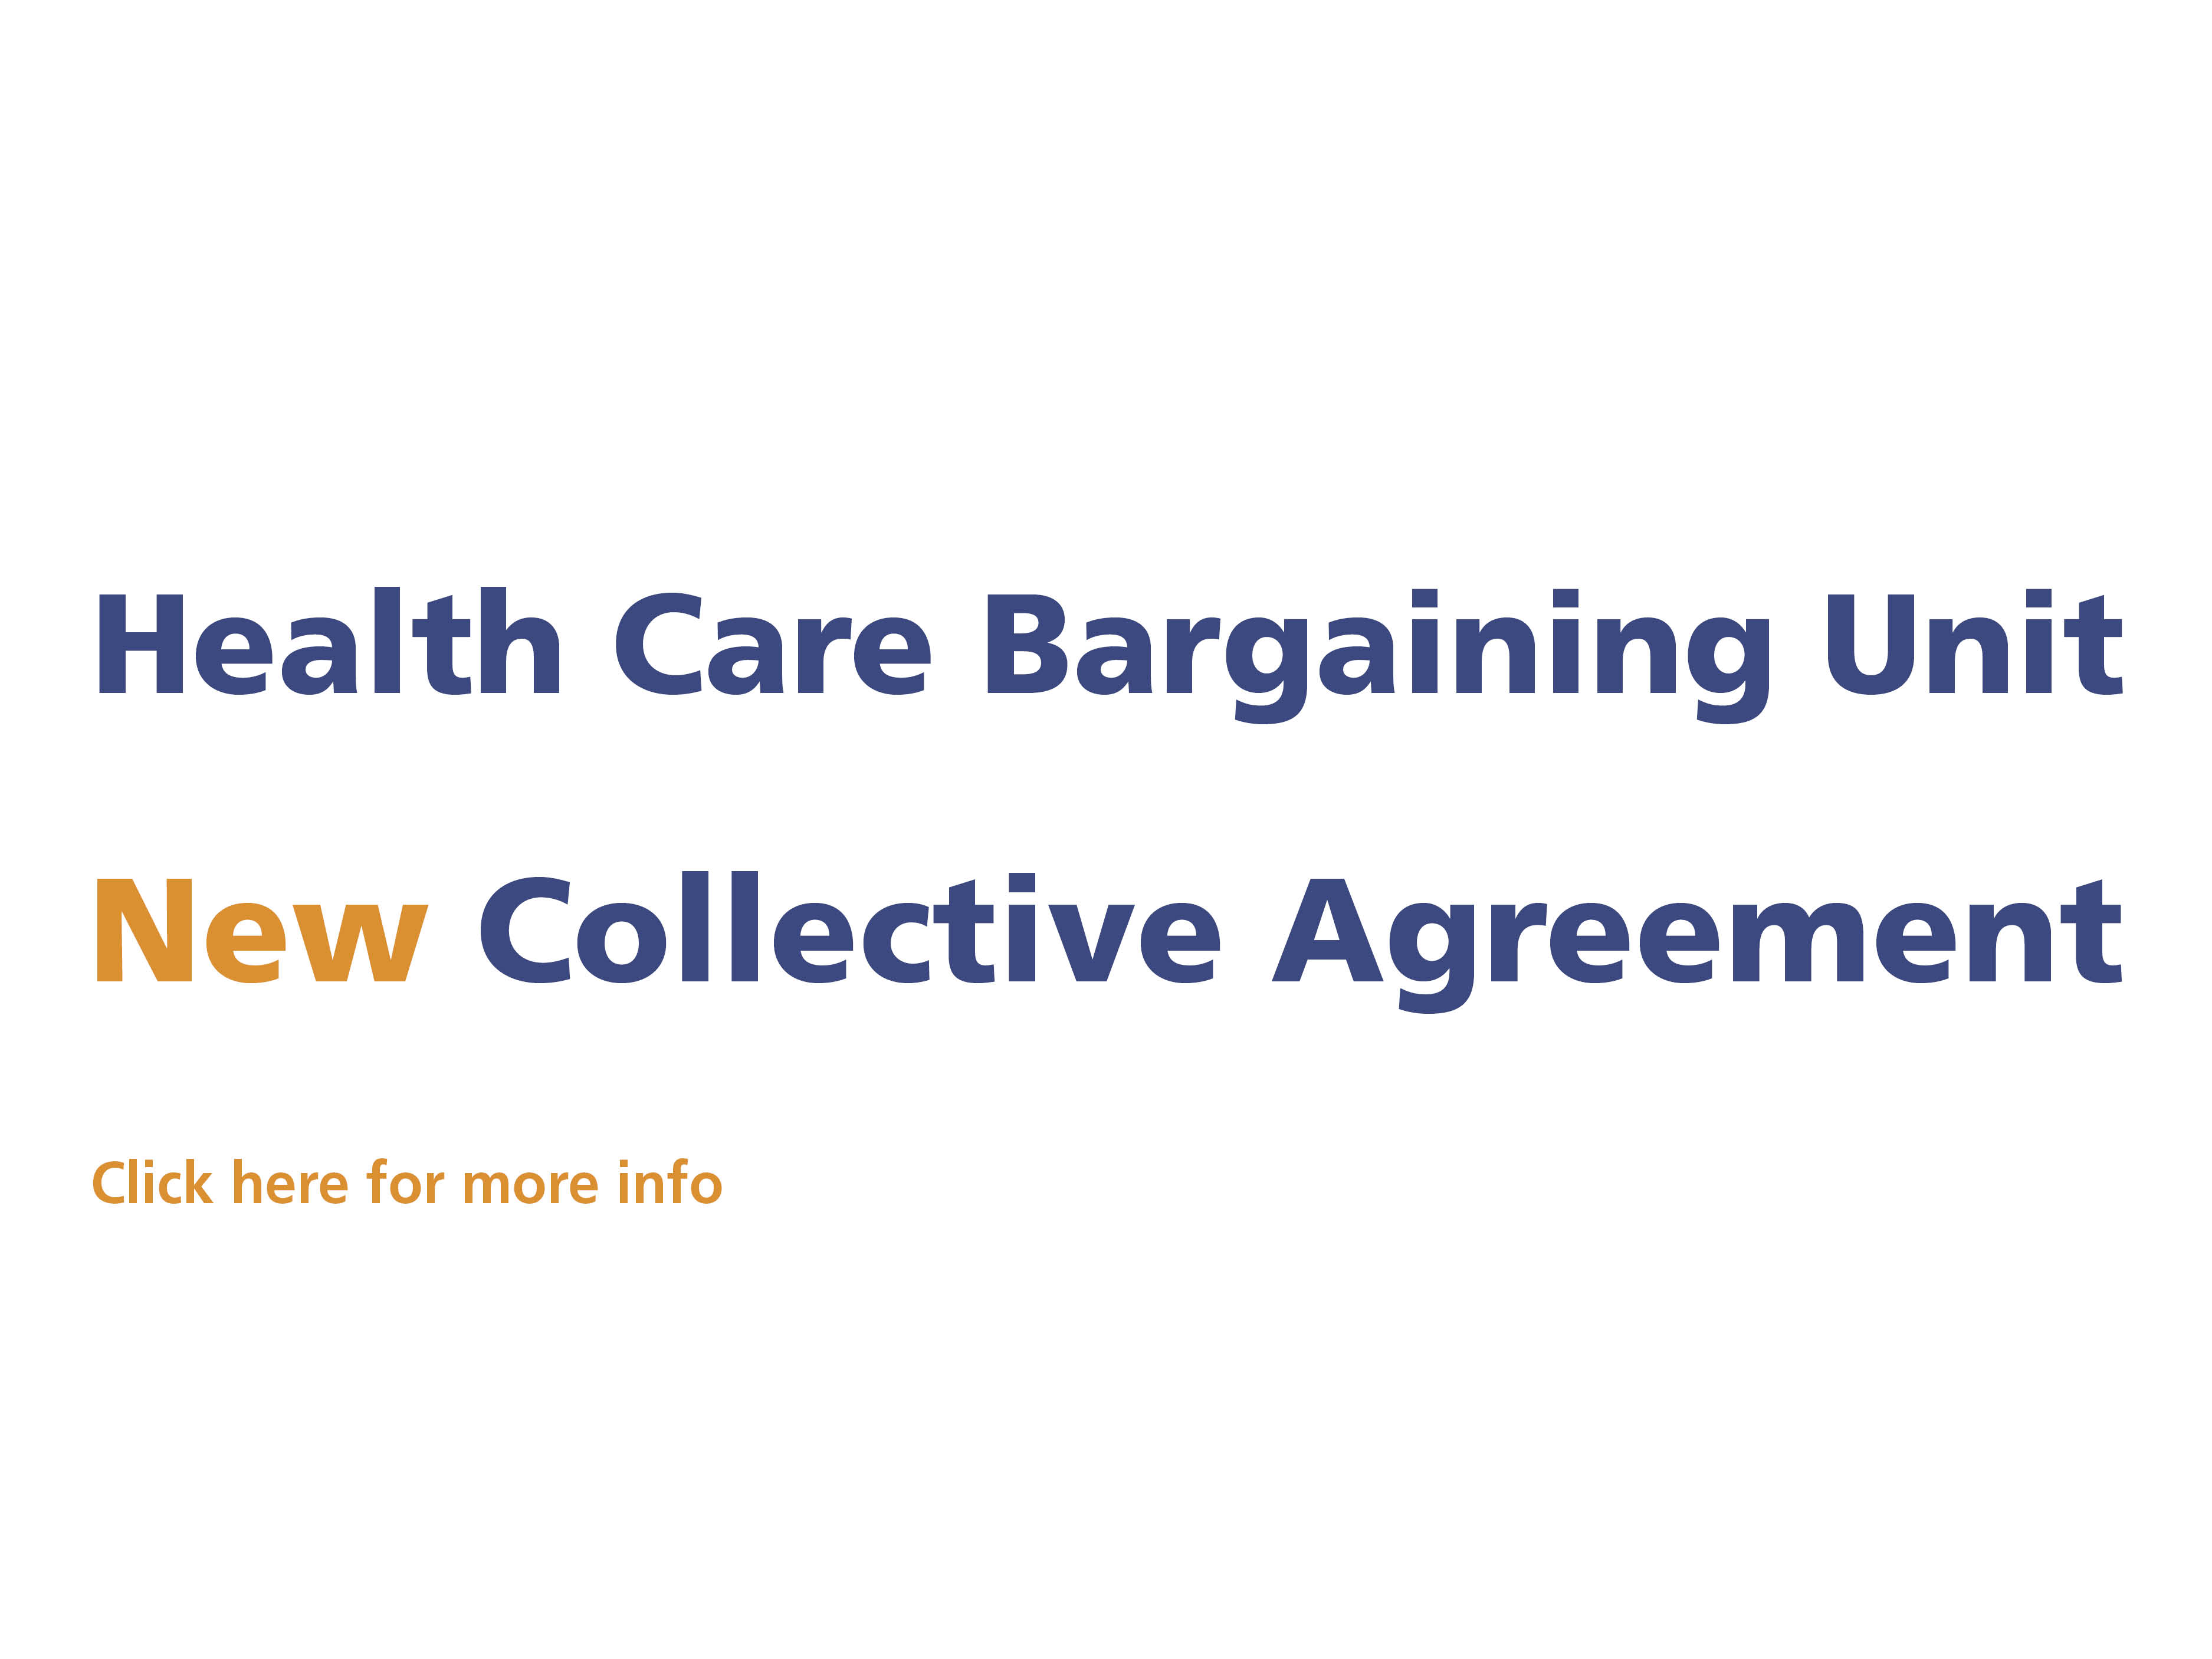 HCBUCollectiveAgreement